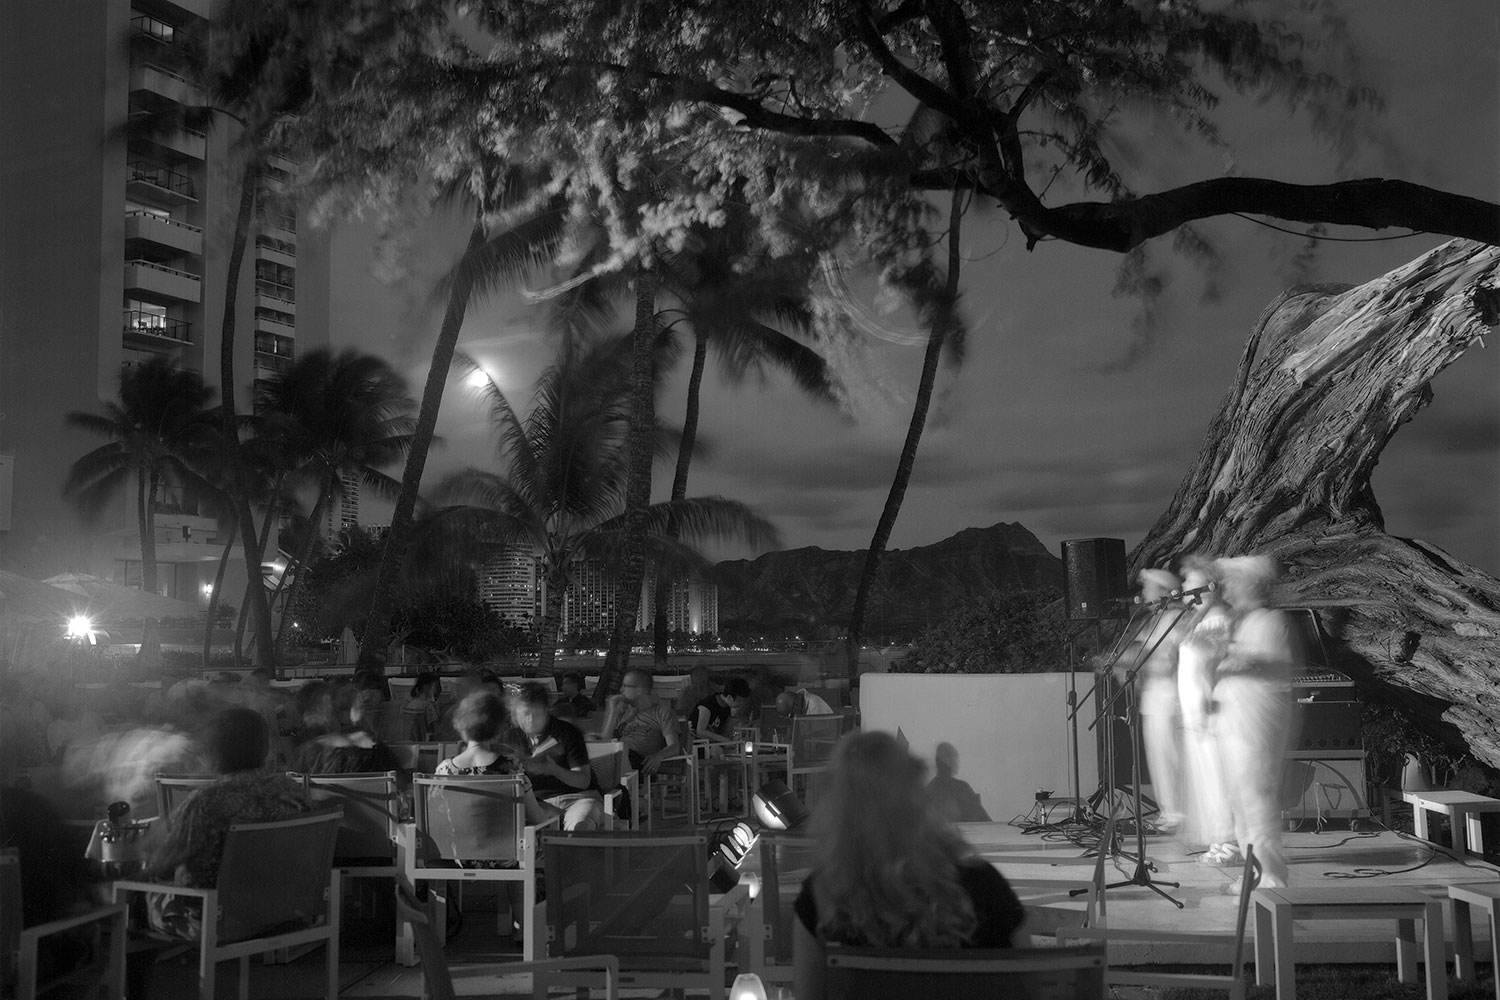 Black and white photo of kiawe tree at night with band on stage, dressed in white